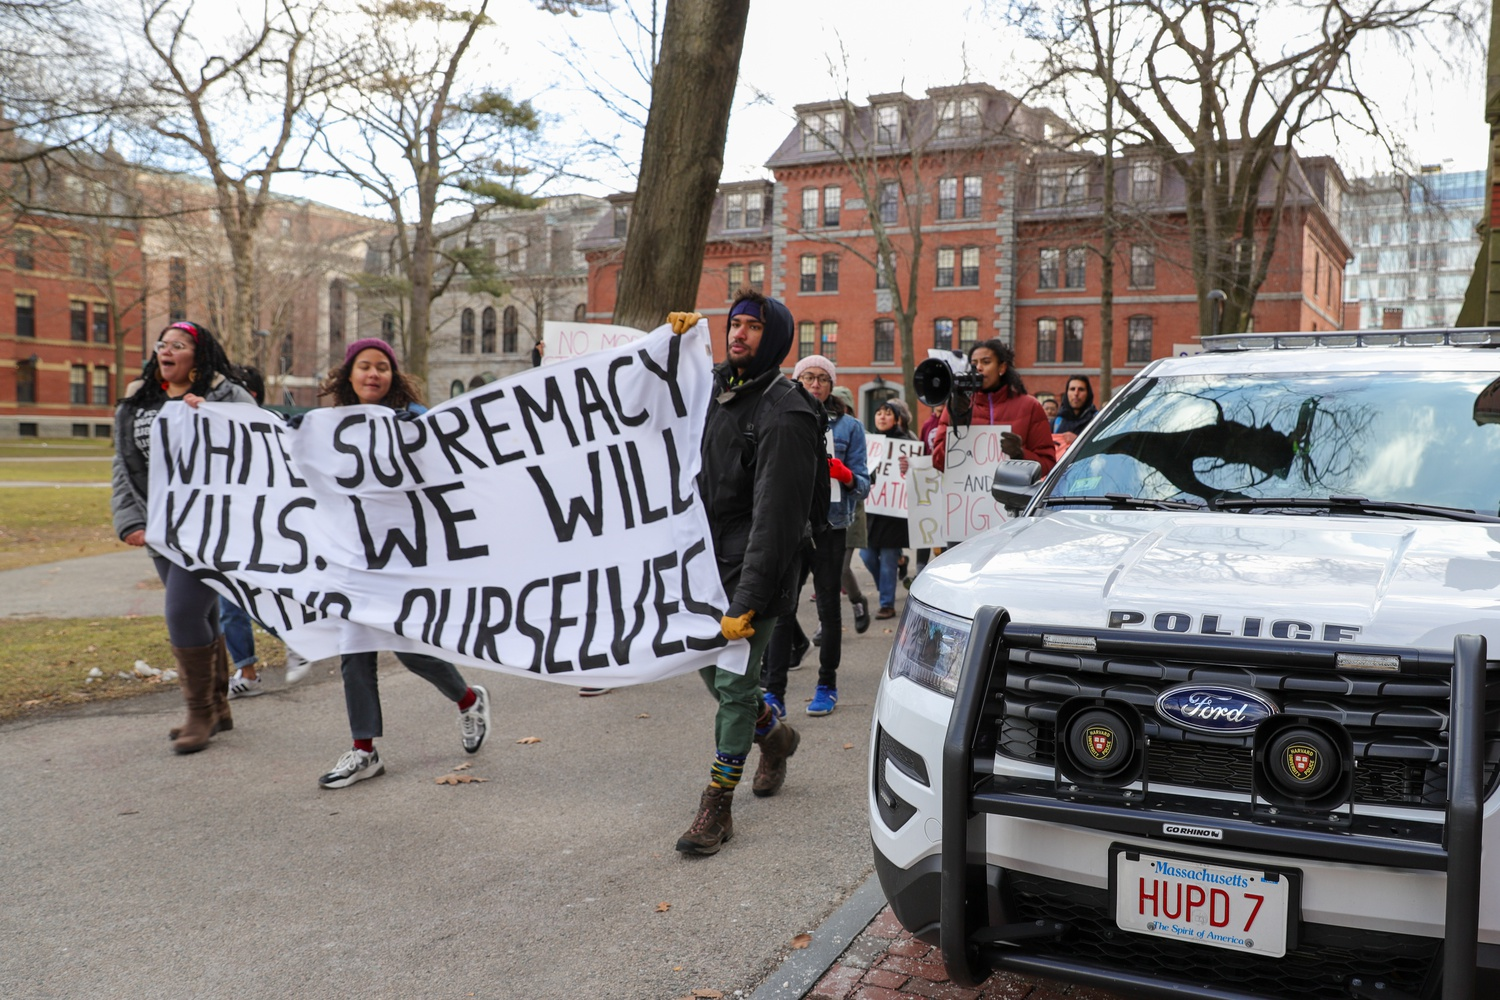 At a February 2020 protest, demonstrators called for the abolition of the Harvard University Police Department.